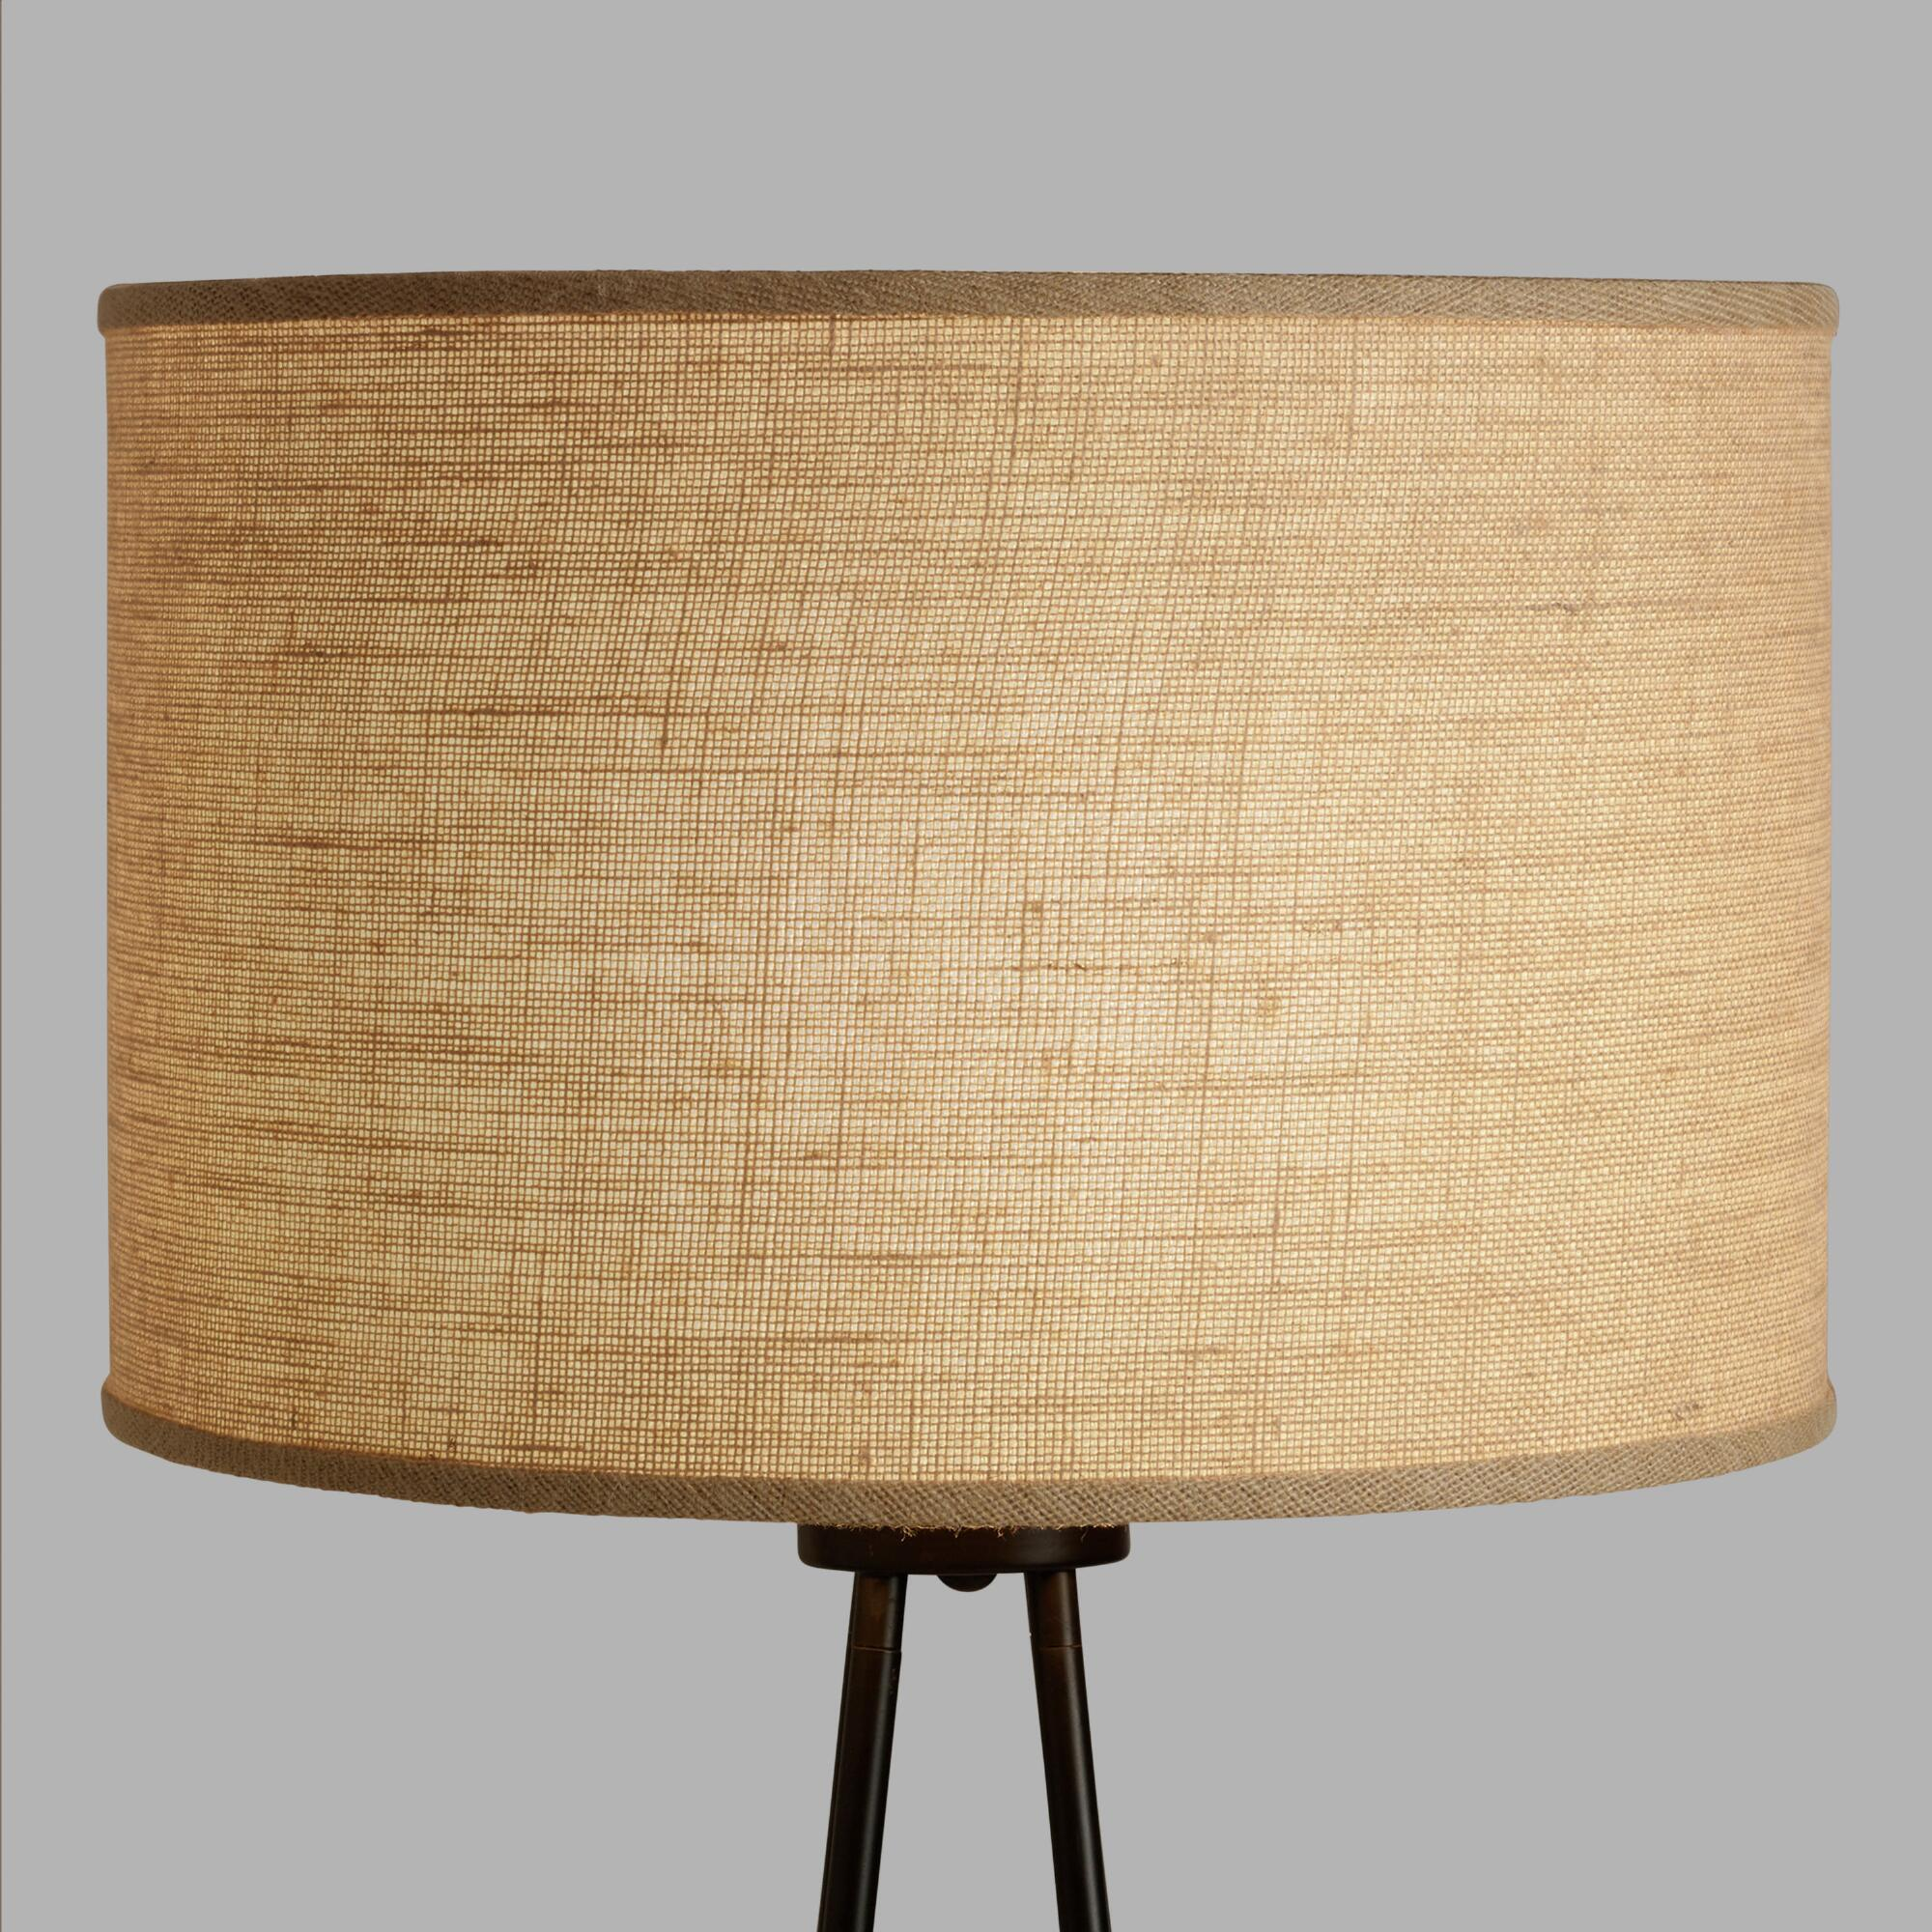 Natural Burlap Drum Floor Lamp Shade - Metal by World Market